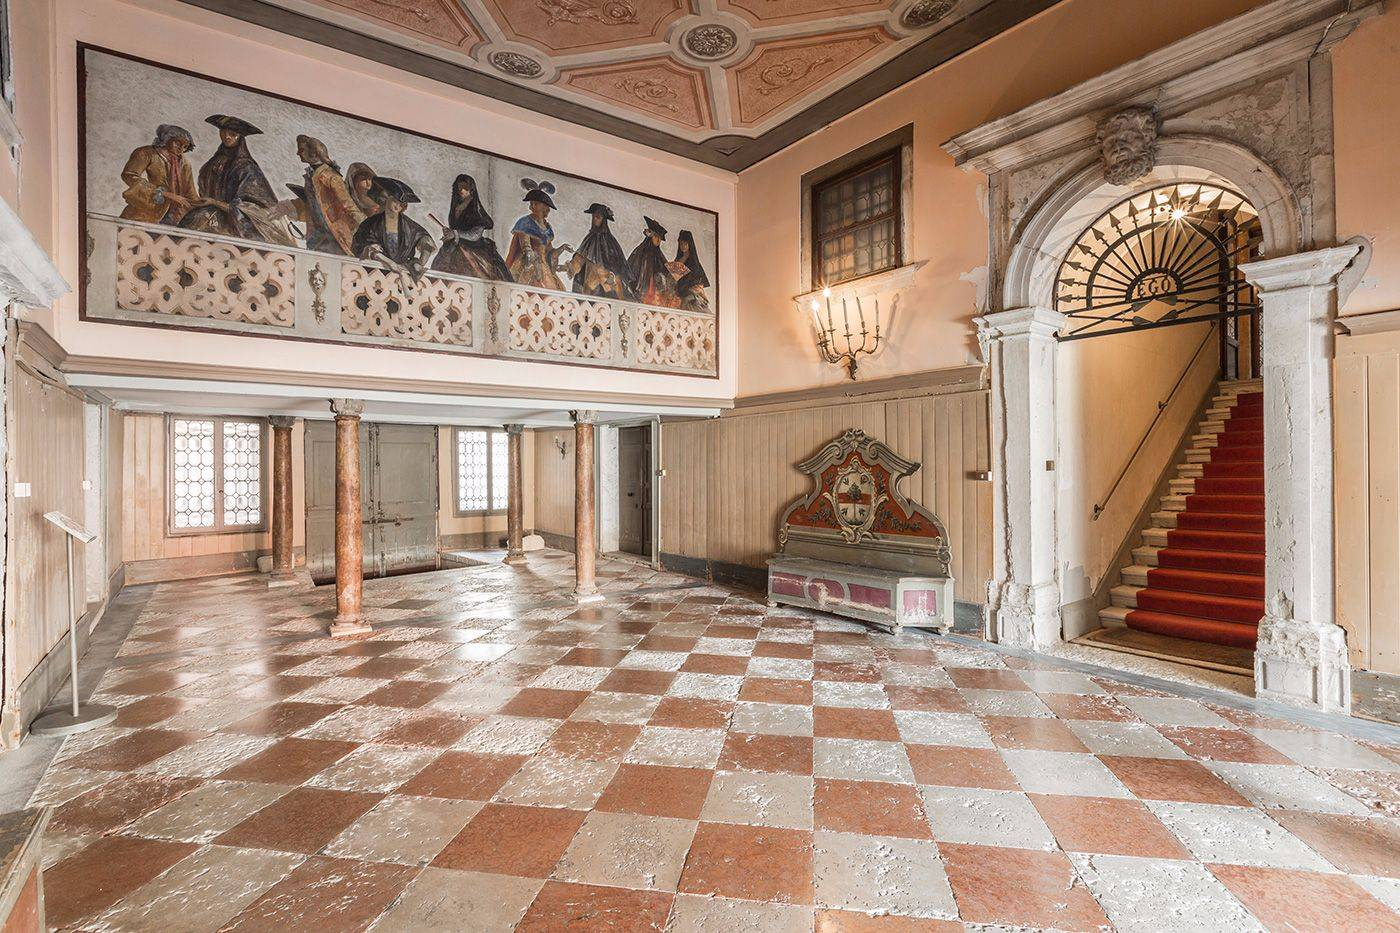 stunning entrance hall of the Palazzo leading to the stairway